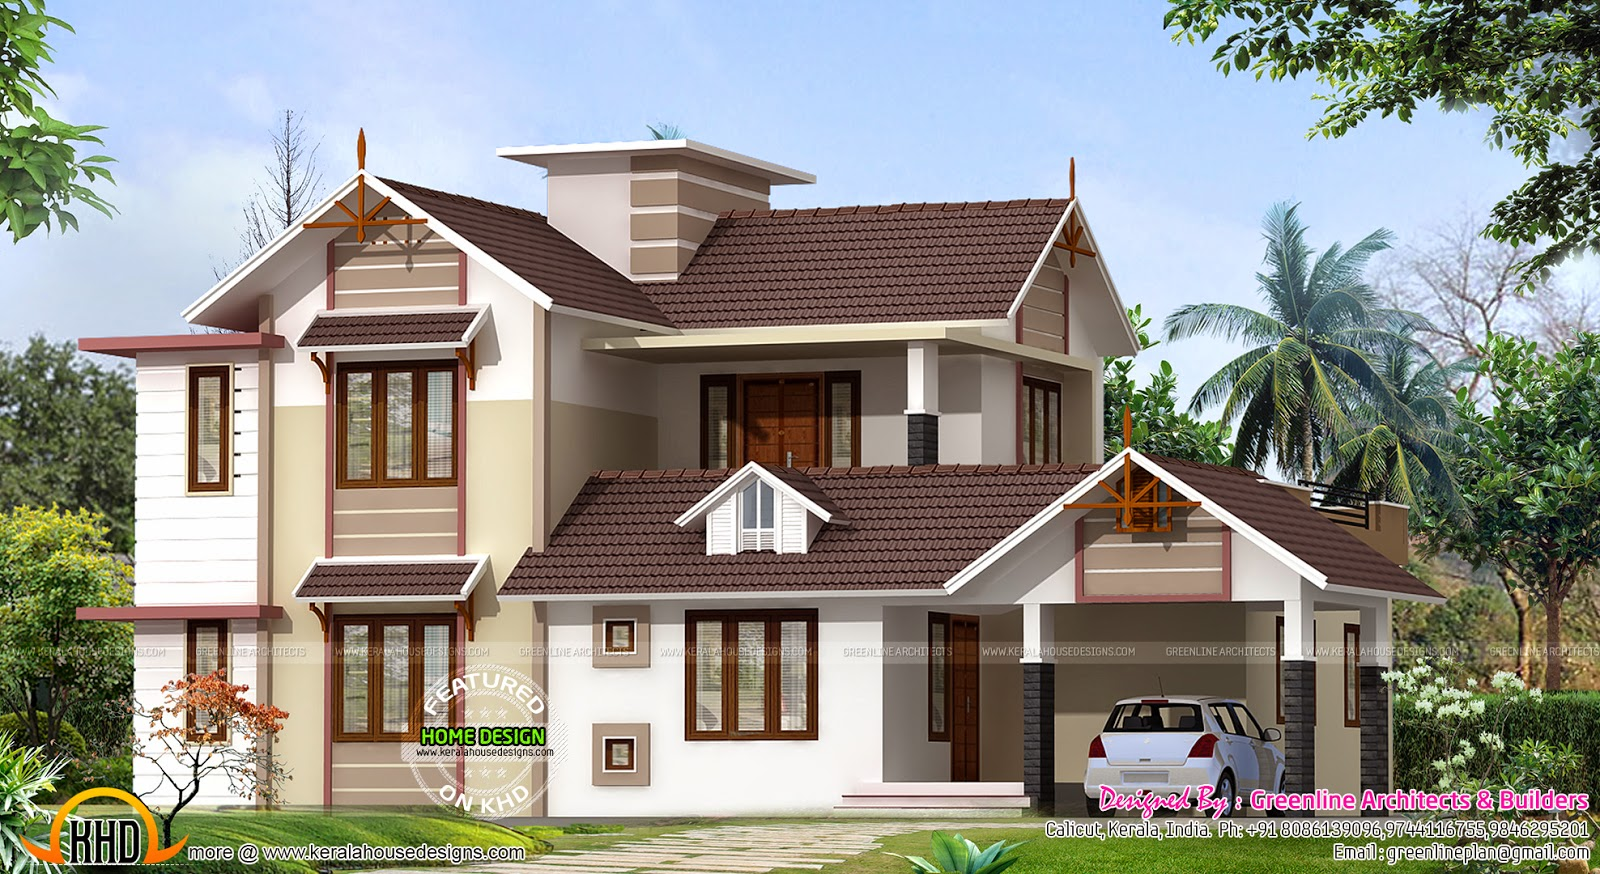 2400 sq-ft new house design - Kerala home design and floor plans